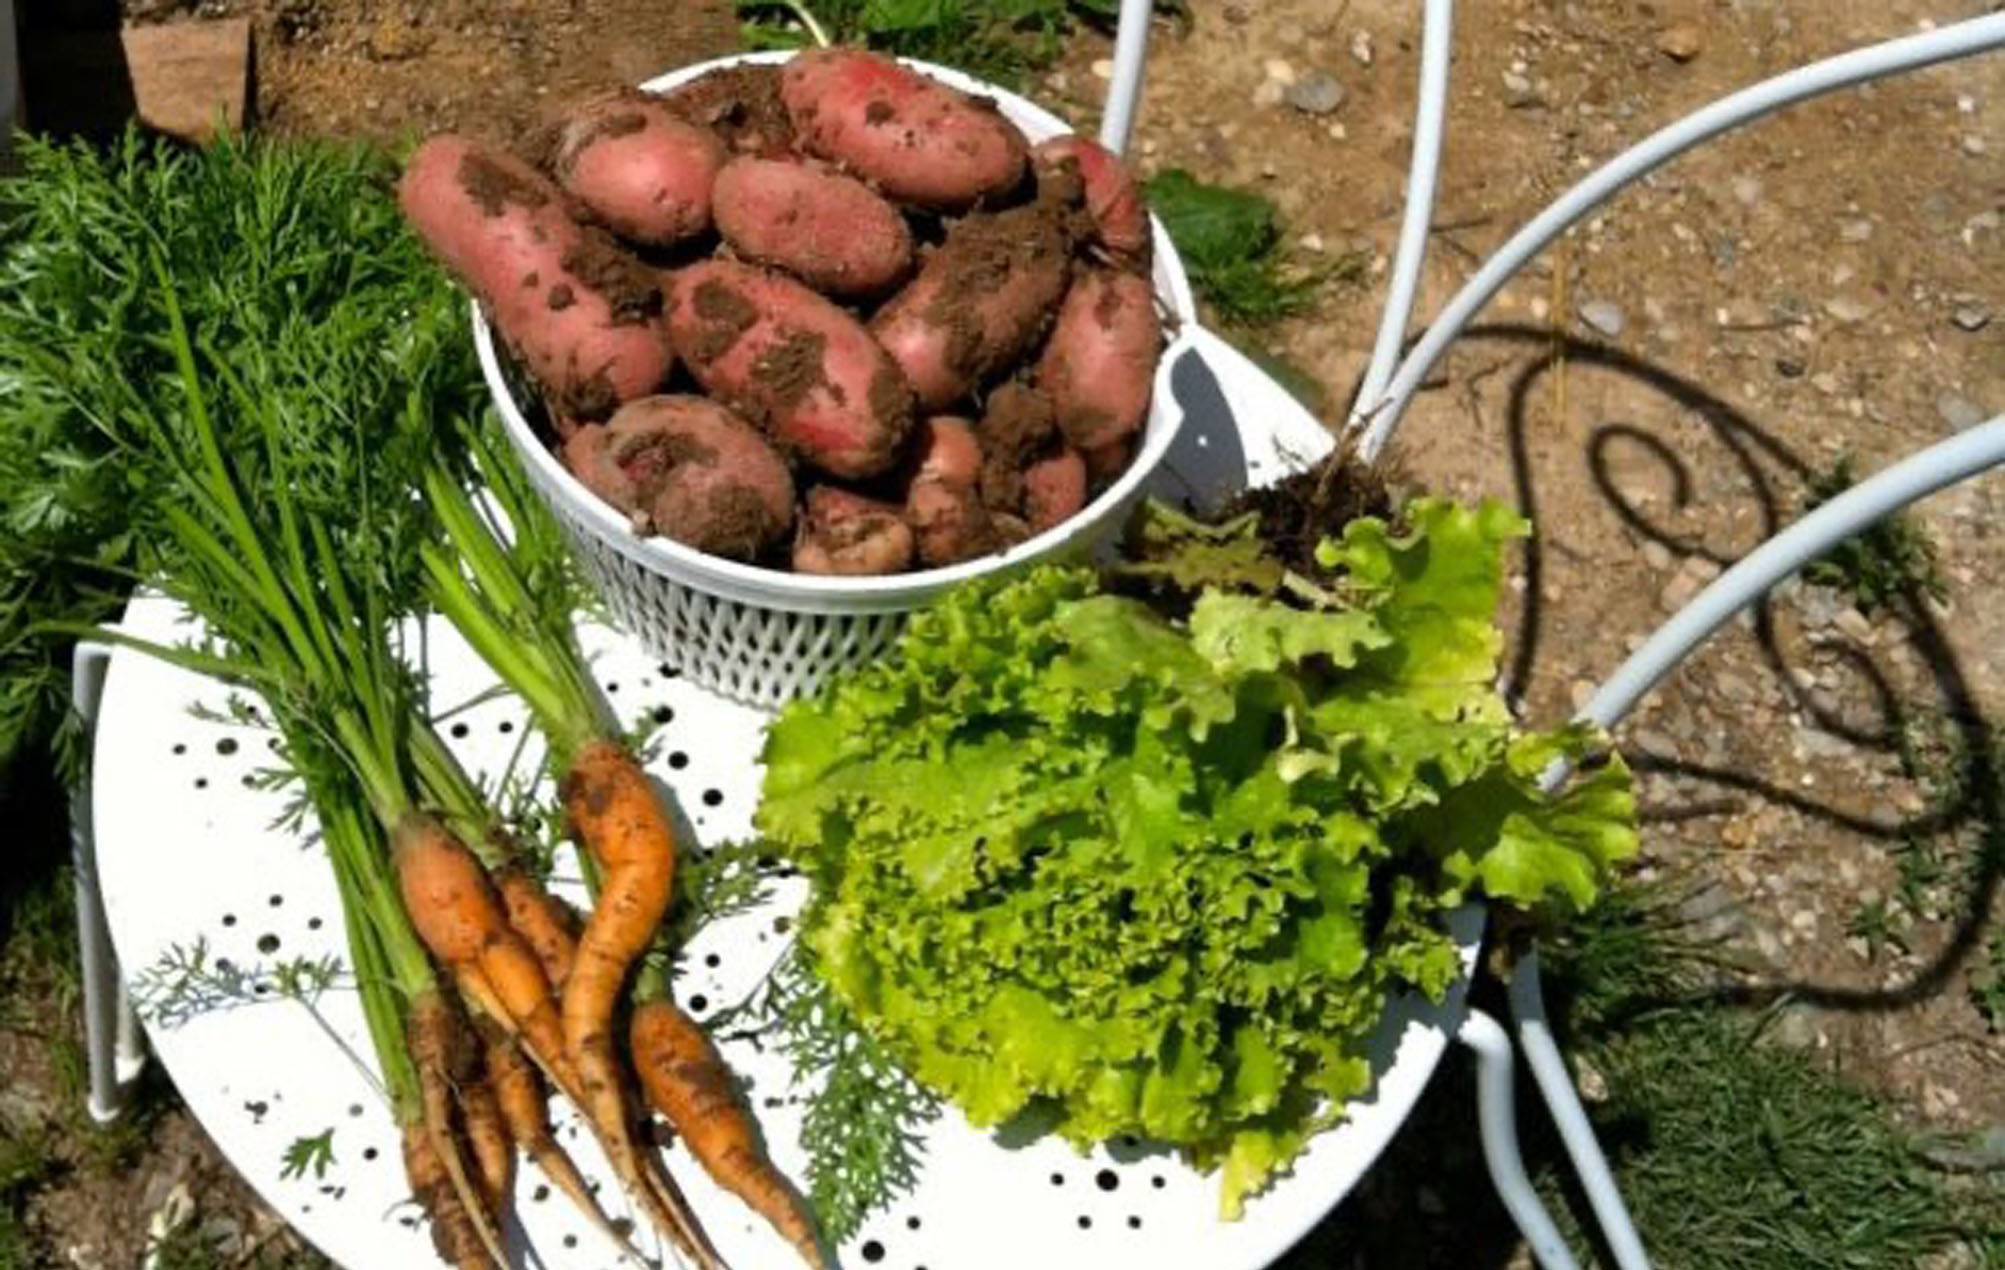 Fresh carrots, lettuce and potatoes